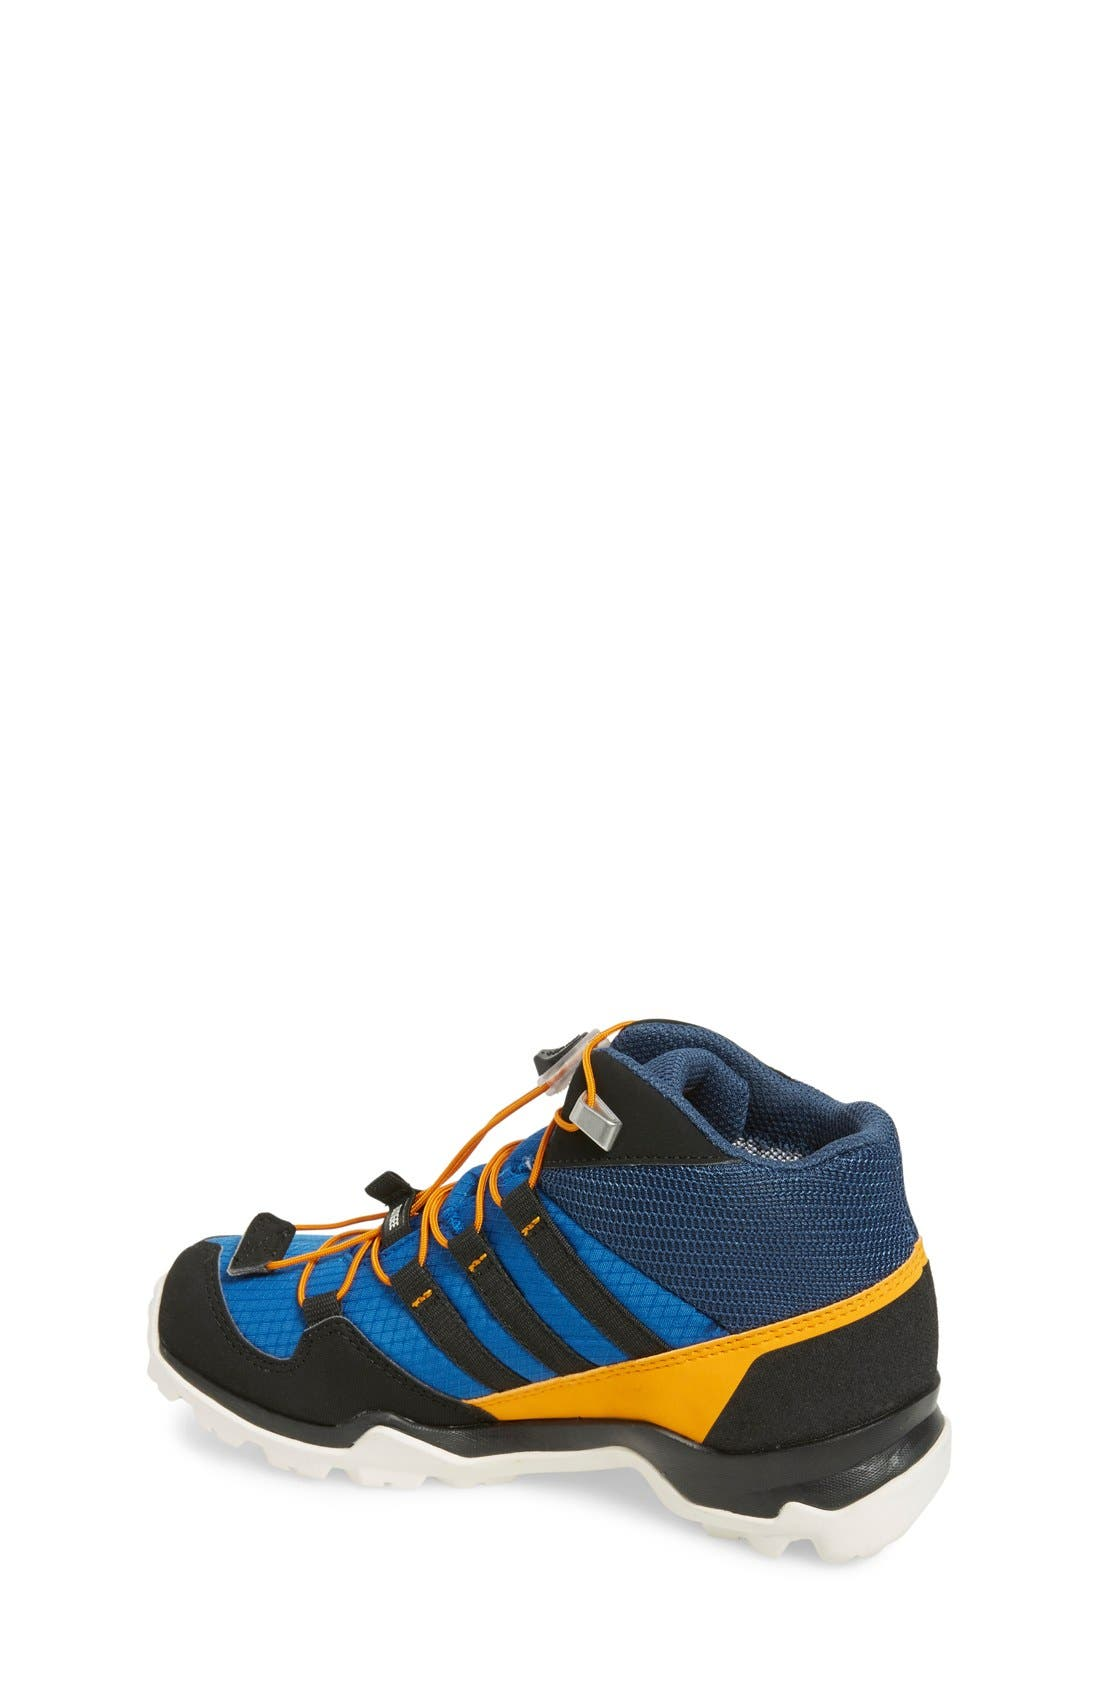 Alternate Image 2  - adidas 'Terrex Mid Gore-Tex' Hiking Shoe (Toddler, Little Kid & Big Kid)